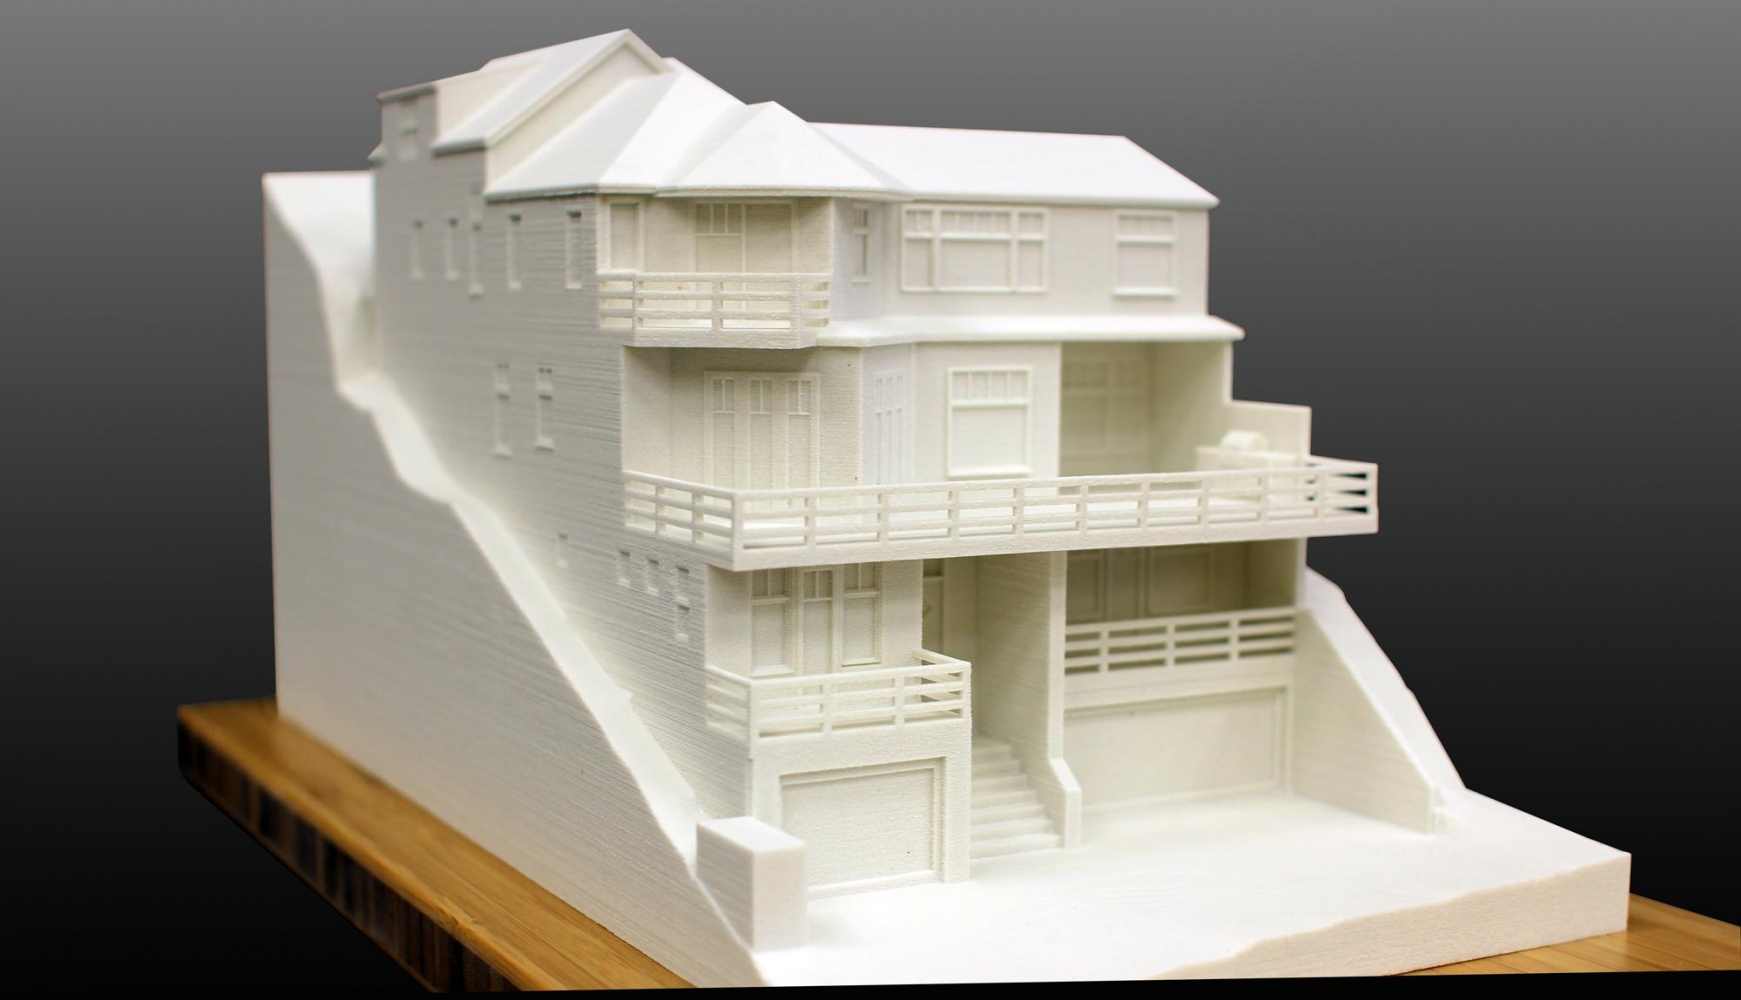 Residential 3d print lgm for 3d printer house for sale